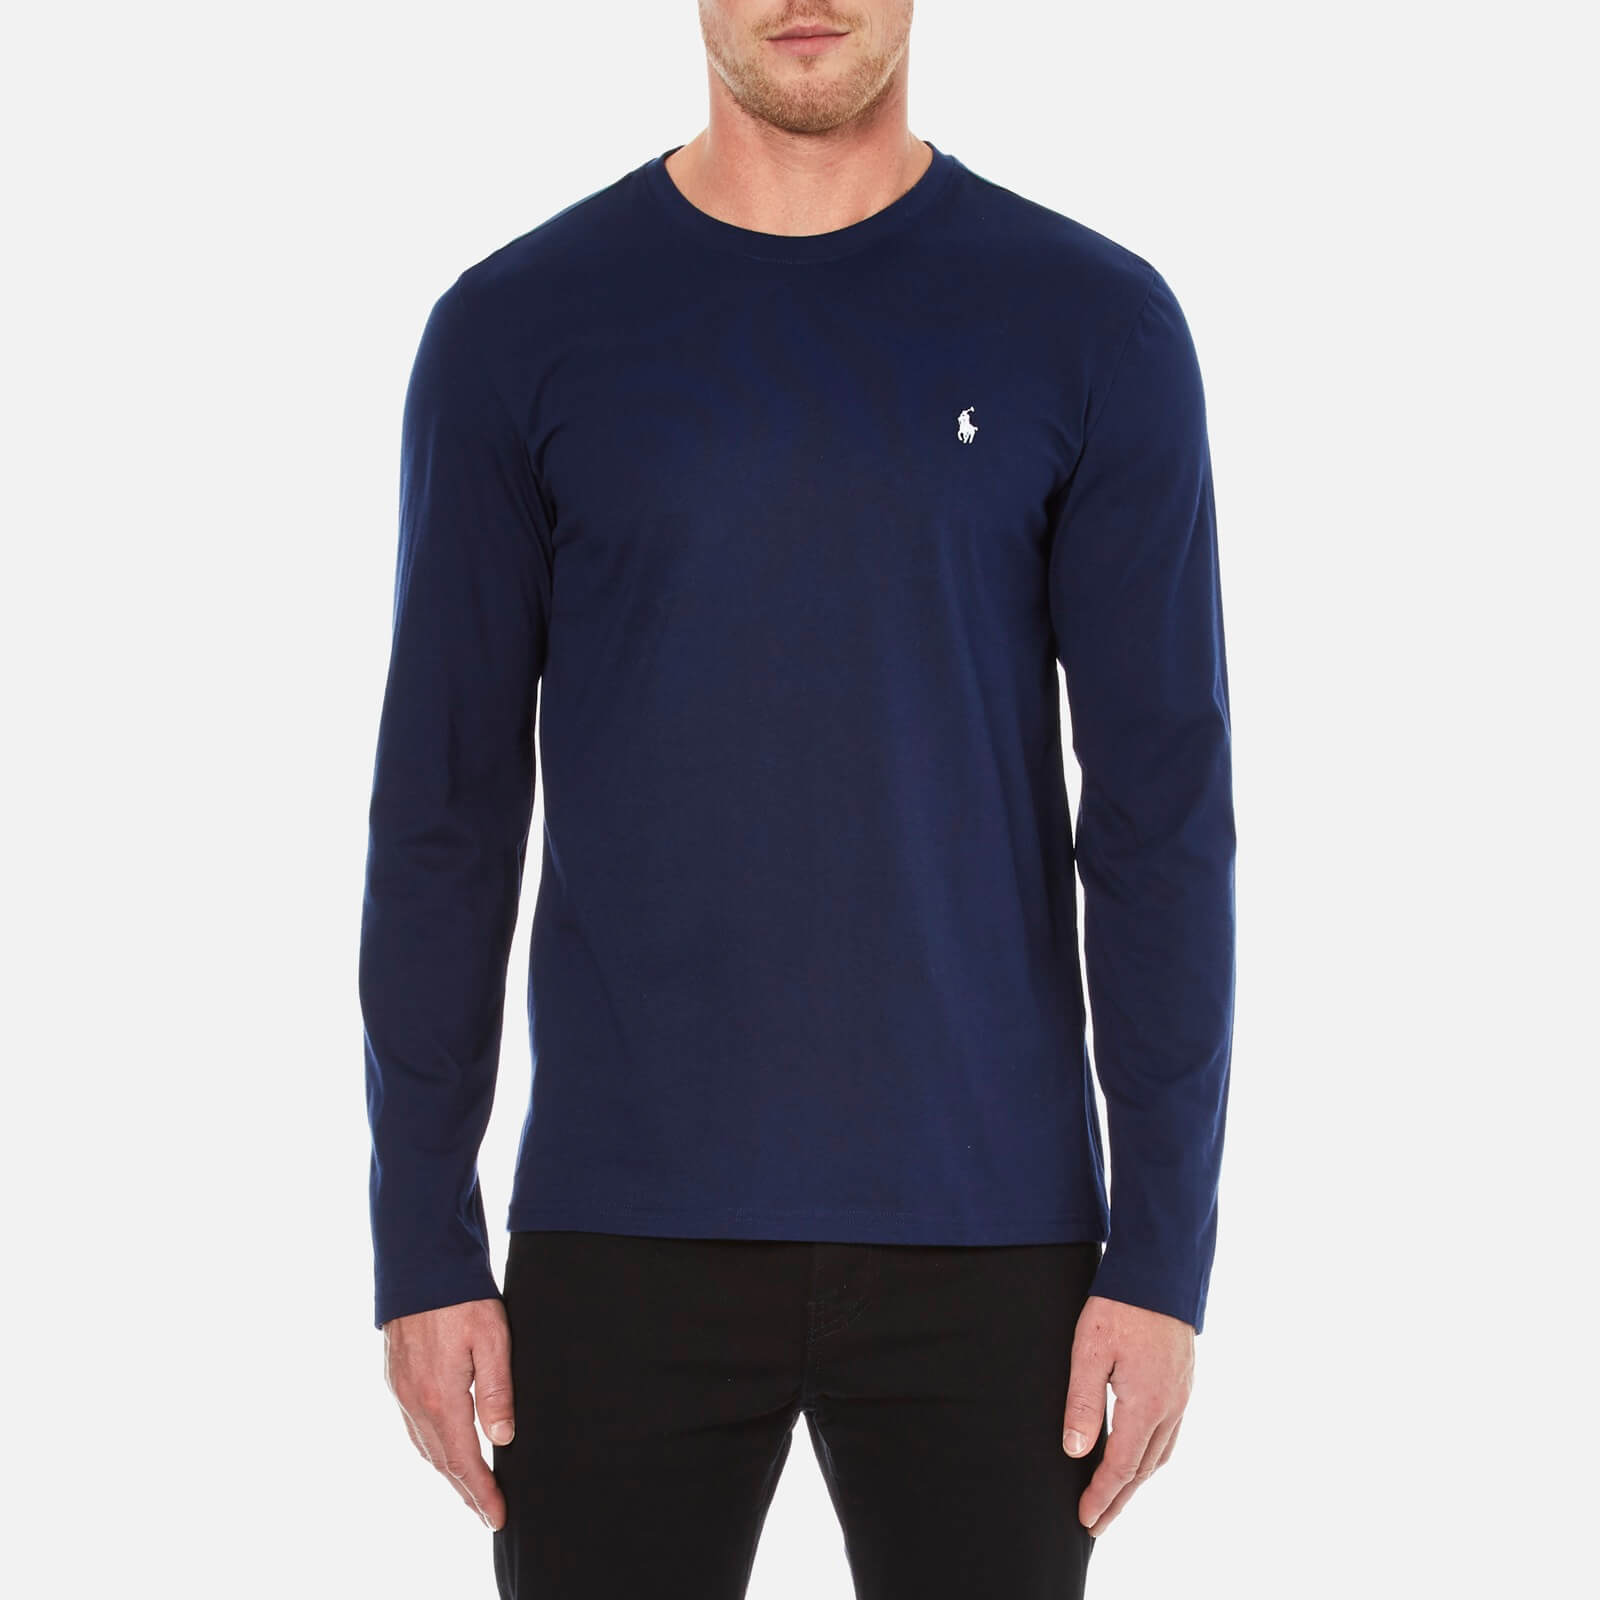 10510385 Polo Ralph Lauren Men's Long Sleeve Crew T-Shirt - Cruise Navy - Free UK  Delivery over £50